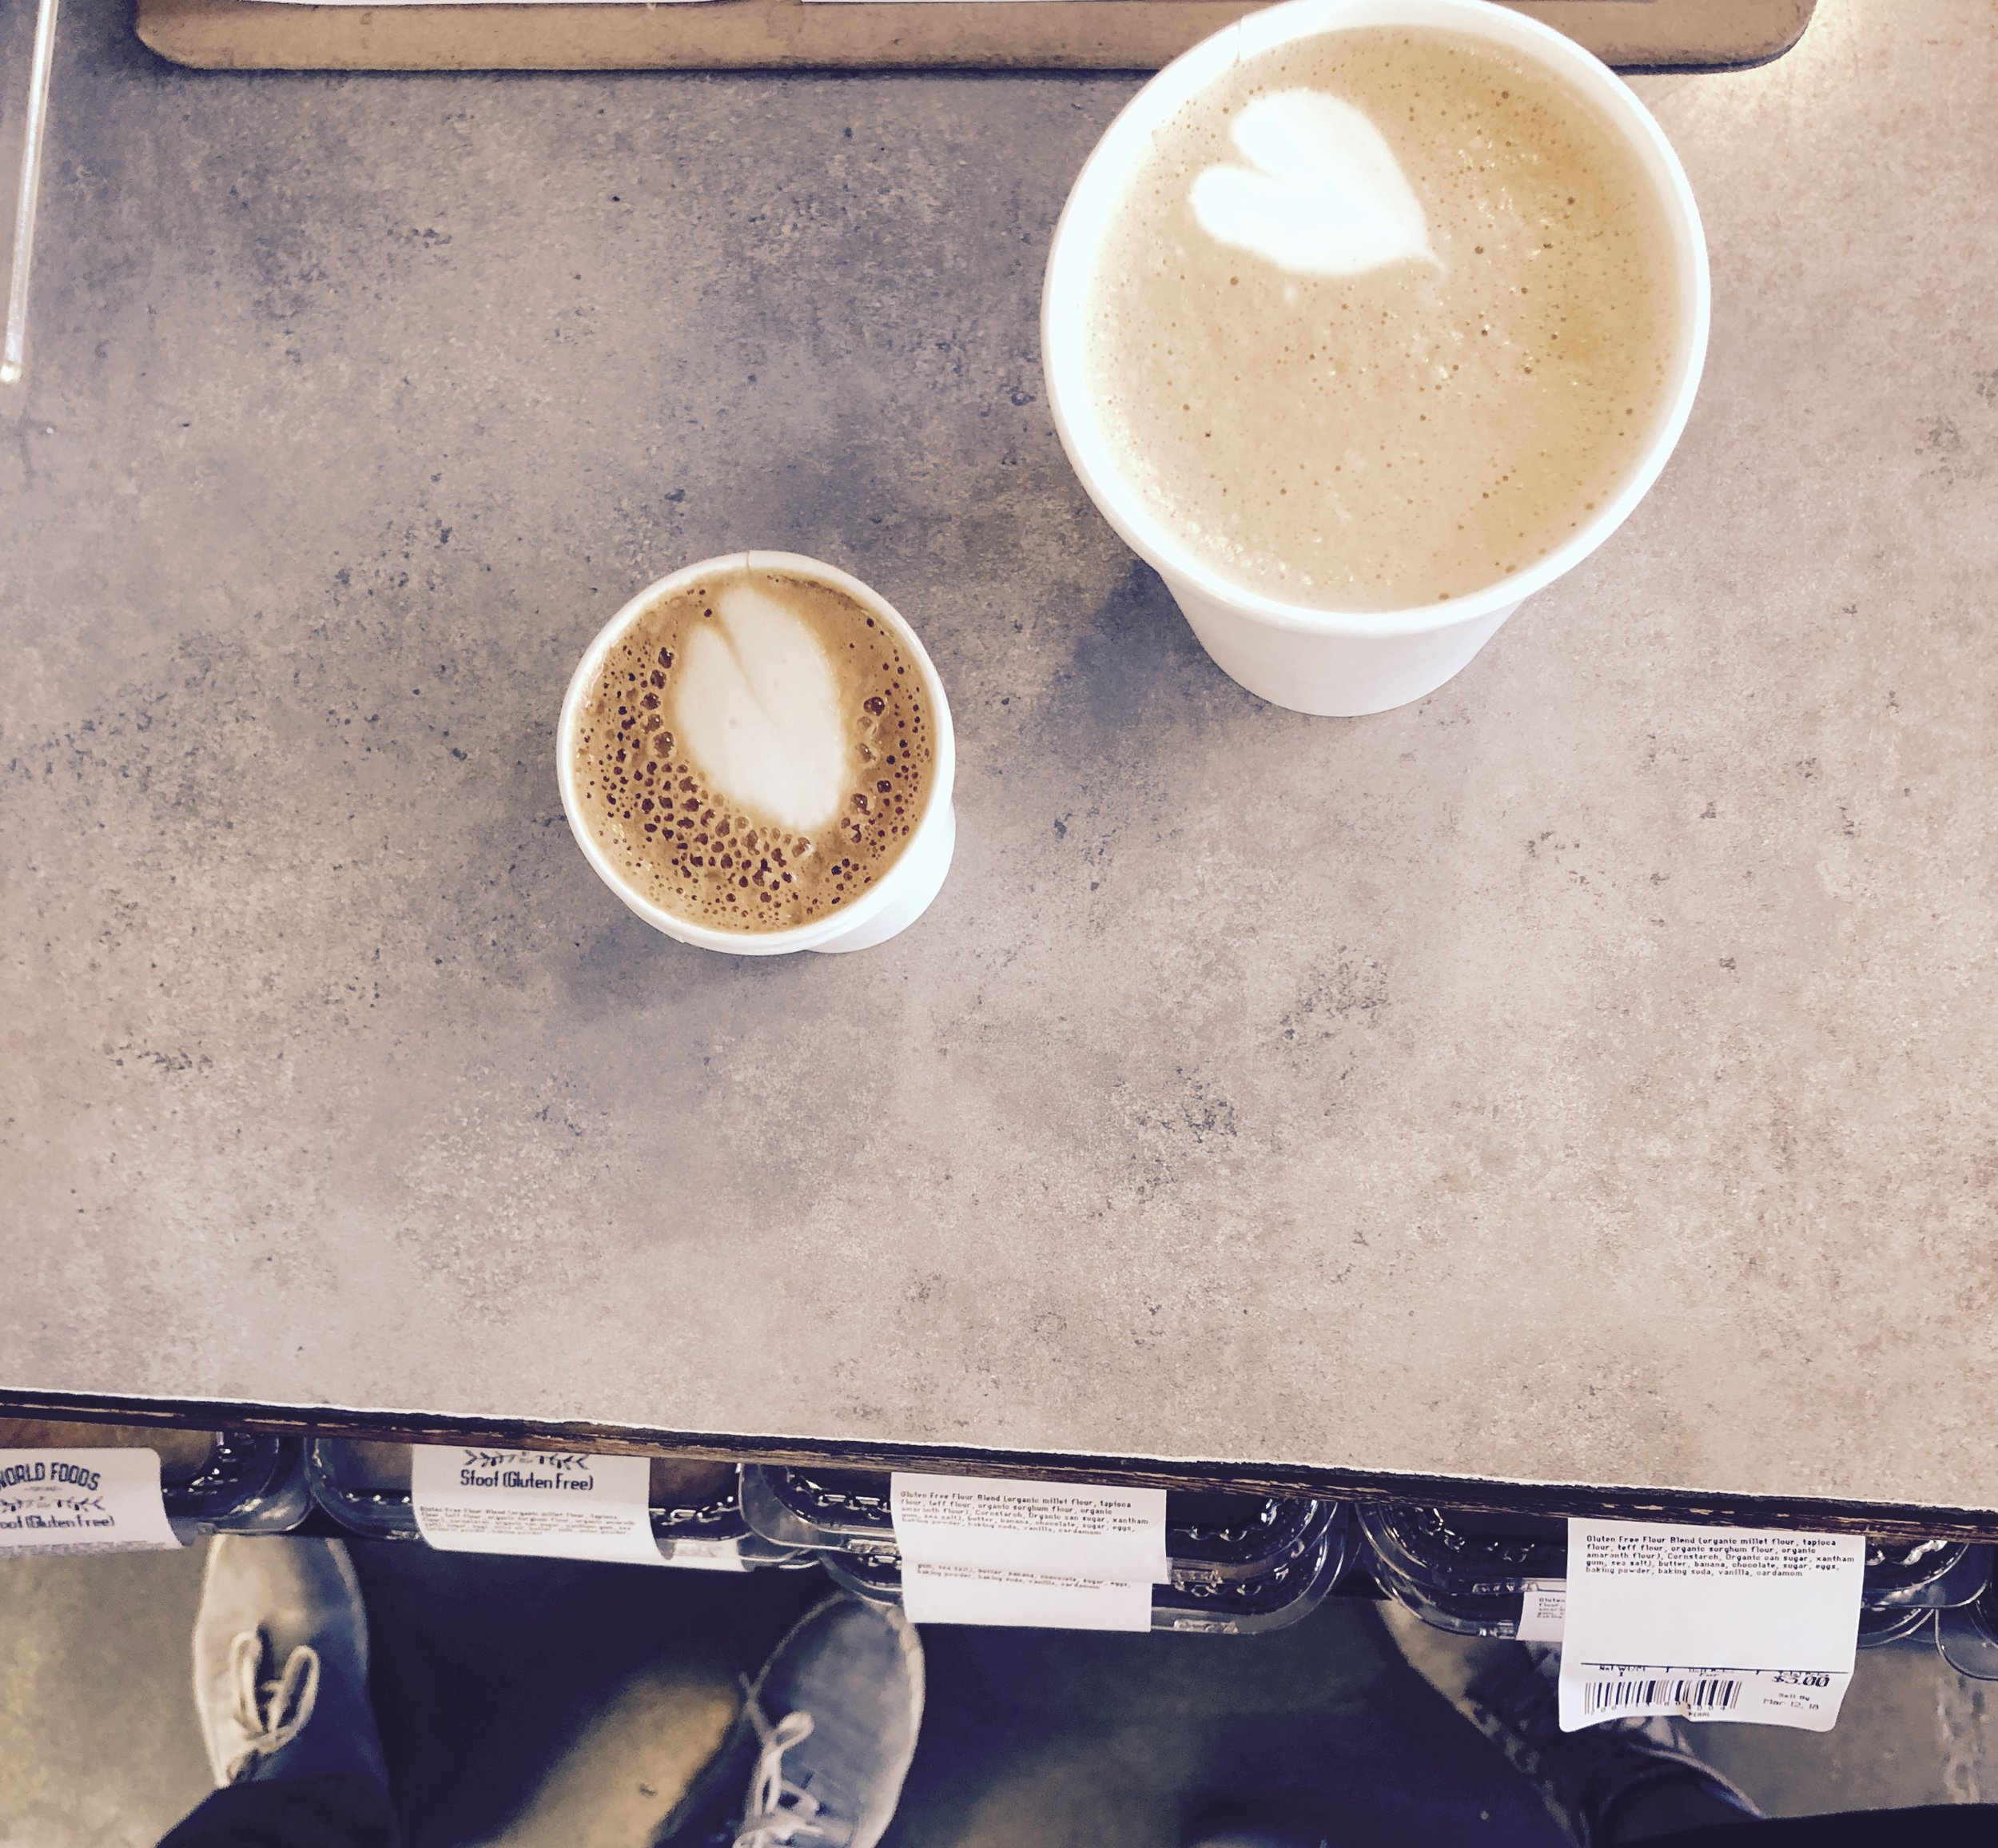 a cortado for him and a vanilla latte for her. both filled with love and goodness.